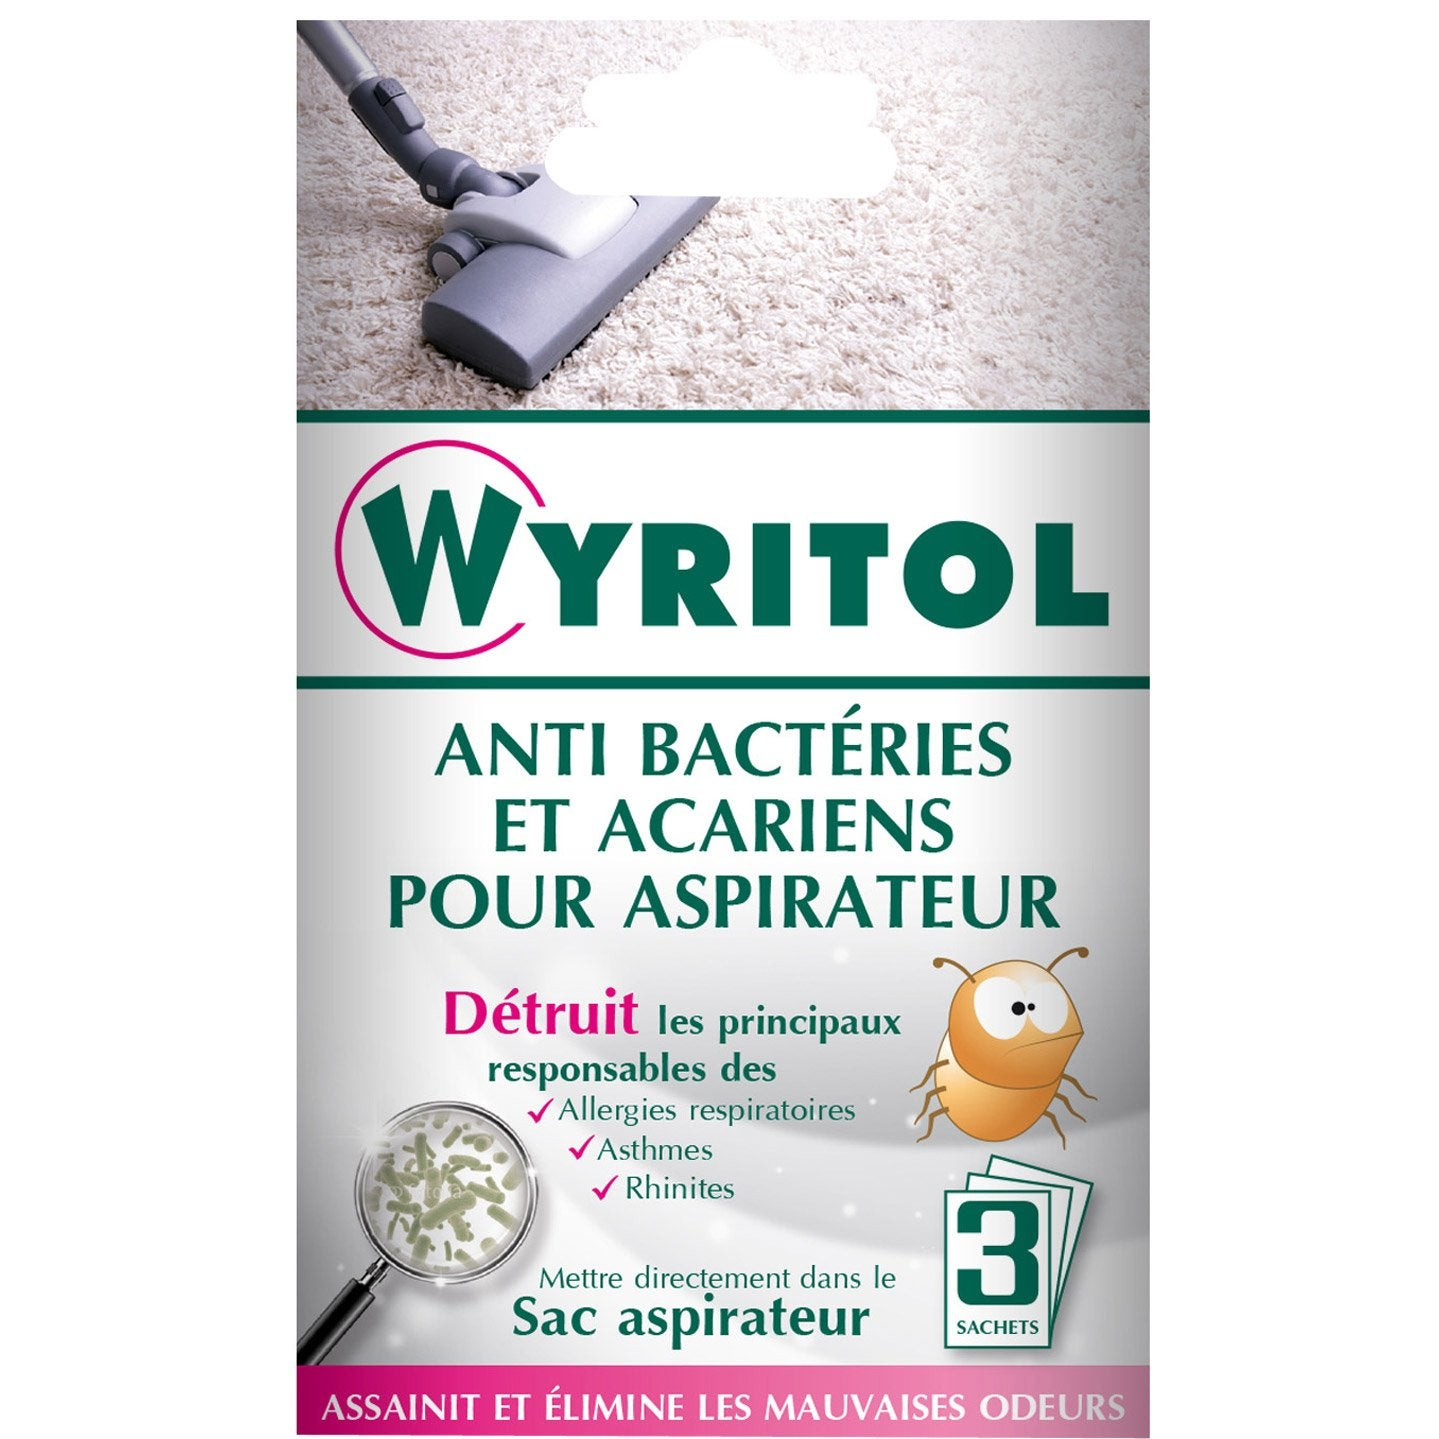 d sinfectant anti bact rien aspirateur wyritol 3 x 10 g leroy merlin. Black Bedroom Furniture Sets. Home Design Ideas